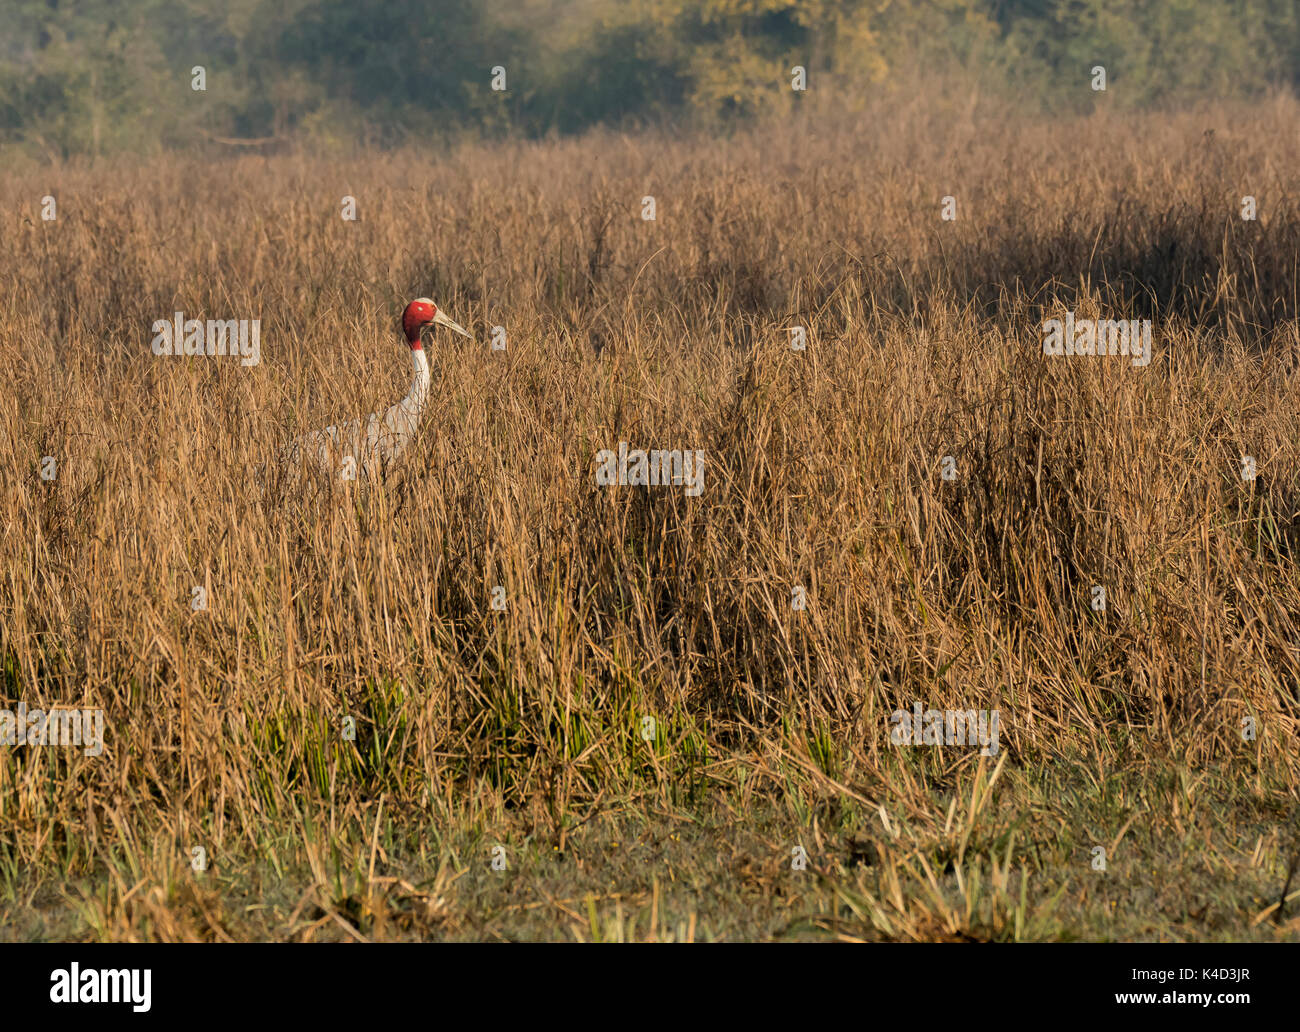 Sarus crane among the tall grasses of bharatpur - Stock Image